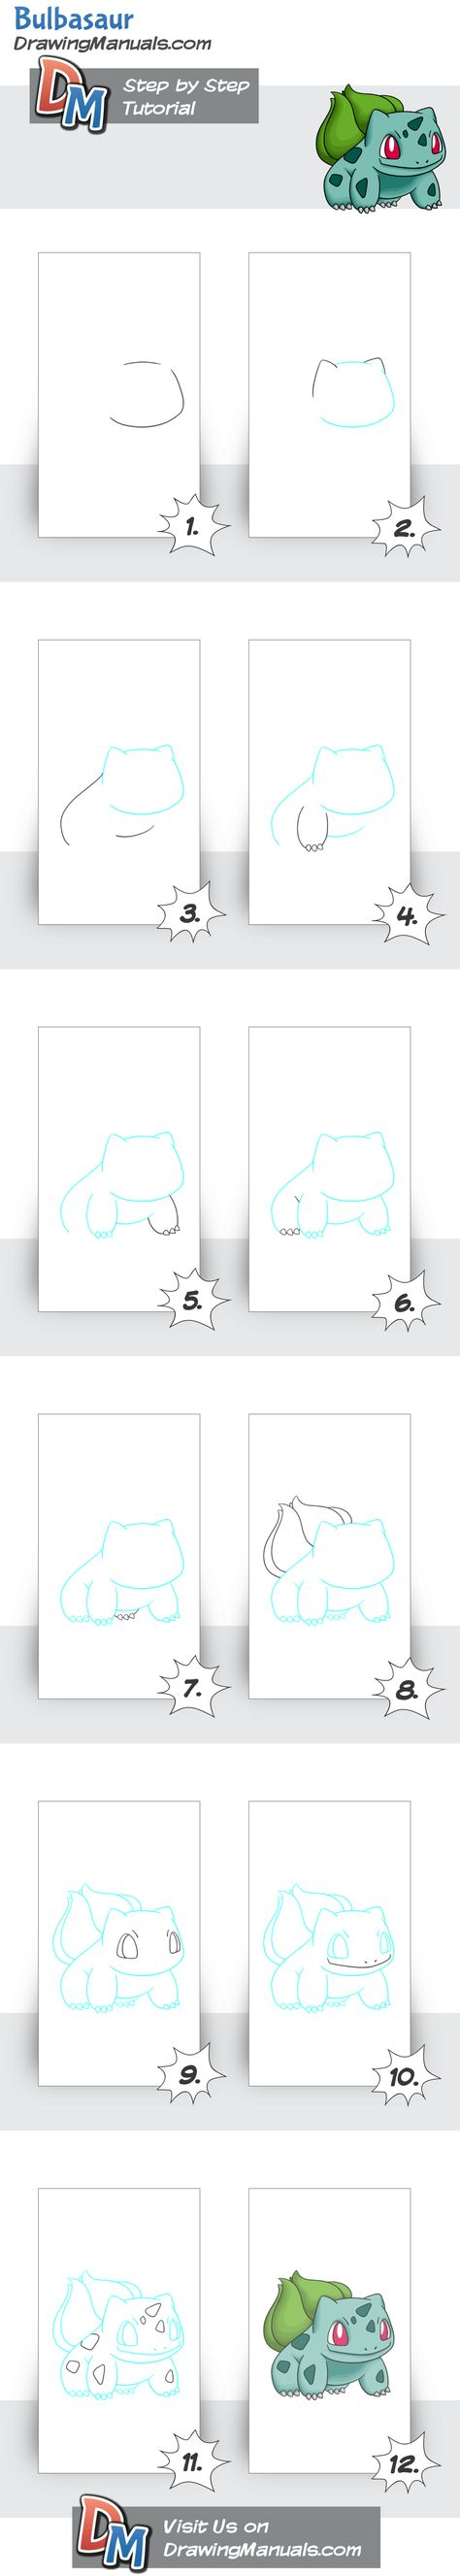 How to Draw Bulbasaur-Pokemon step-by-step guideline http://drawingmanuals.com/manual/how-to-draw-bulbasaur-pokemon/ #pokemon